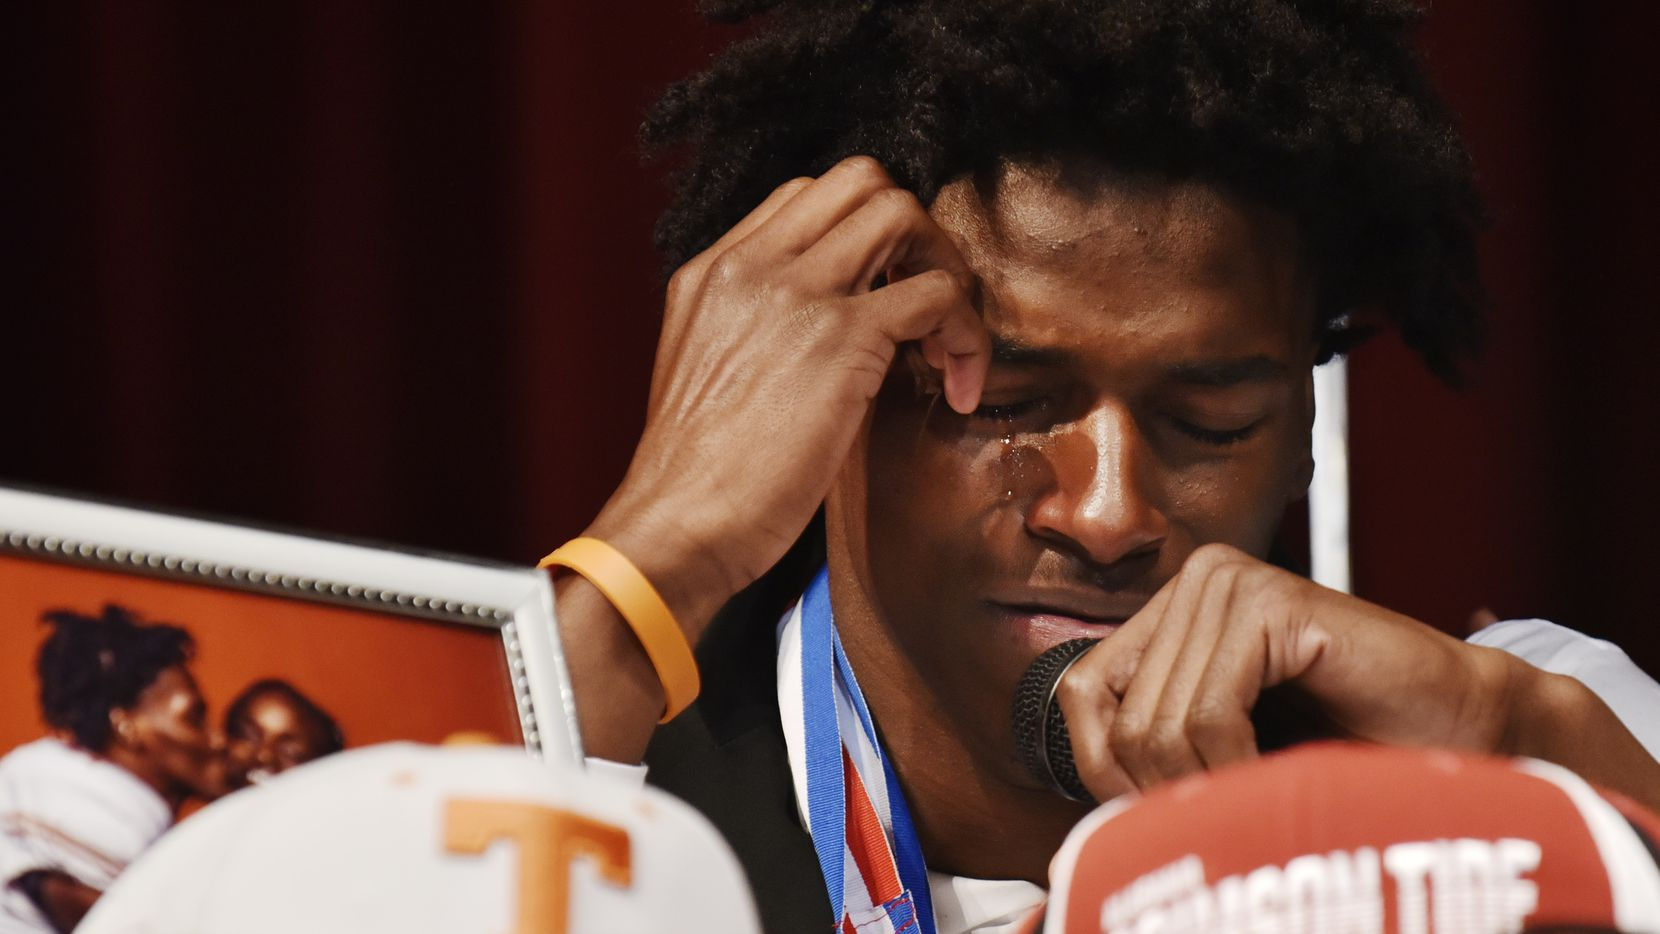 Duncanville cornerback Ennis Rakestraw, Jr., begins to cry as he speaks about his family and why he chose Missouri over other schools during National Signing Day, Wednesday morning Feb. 5, 2020 in Duncanville.